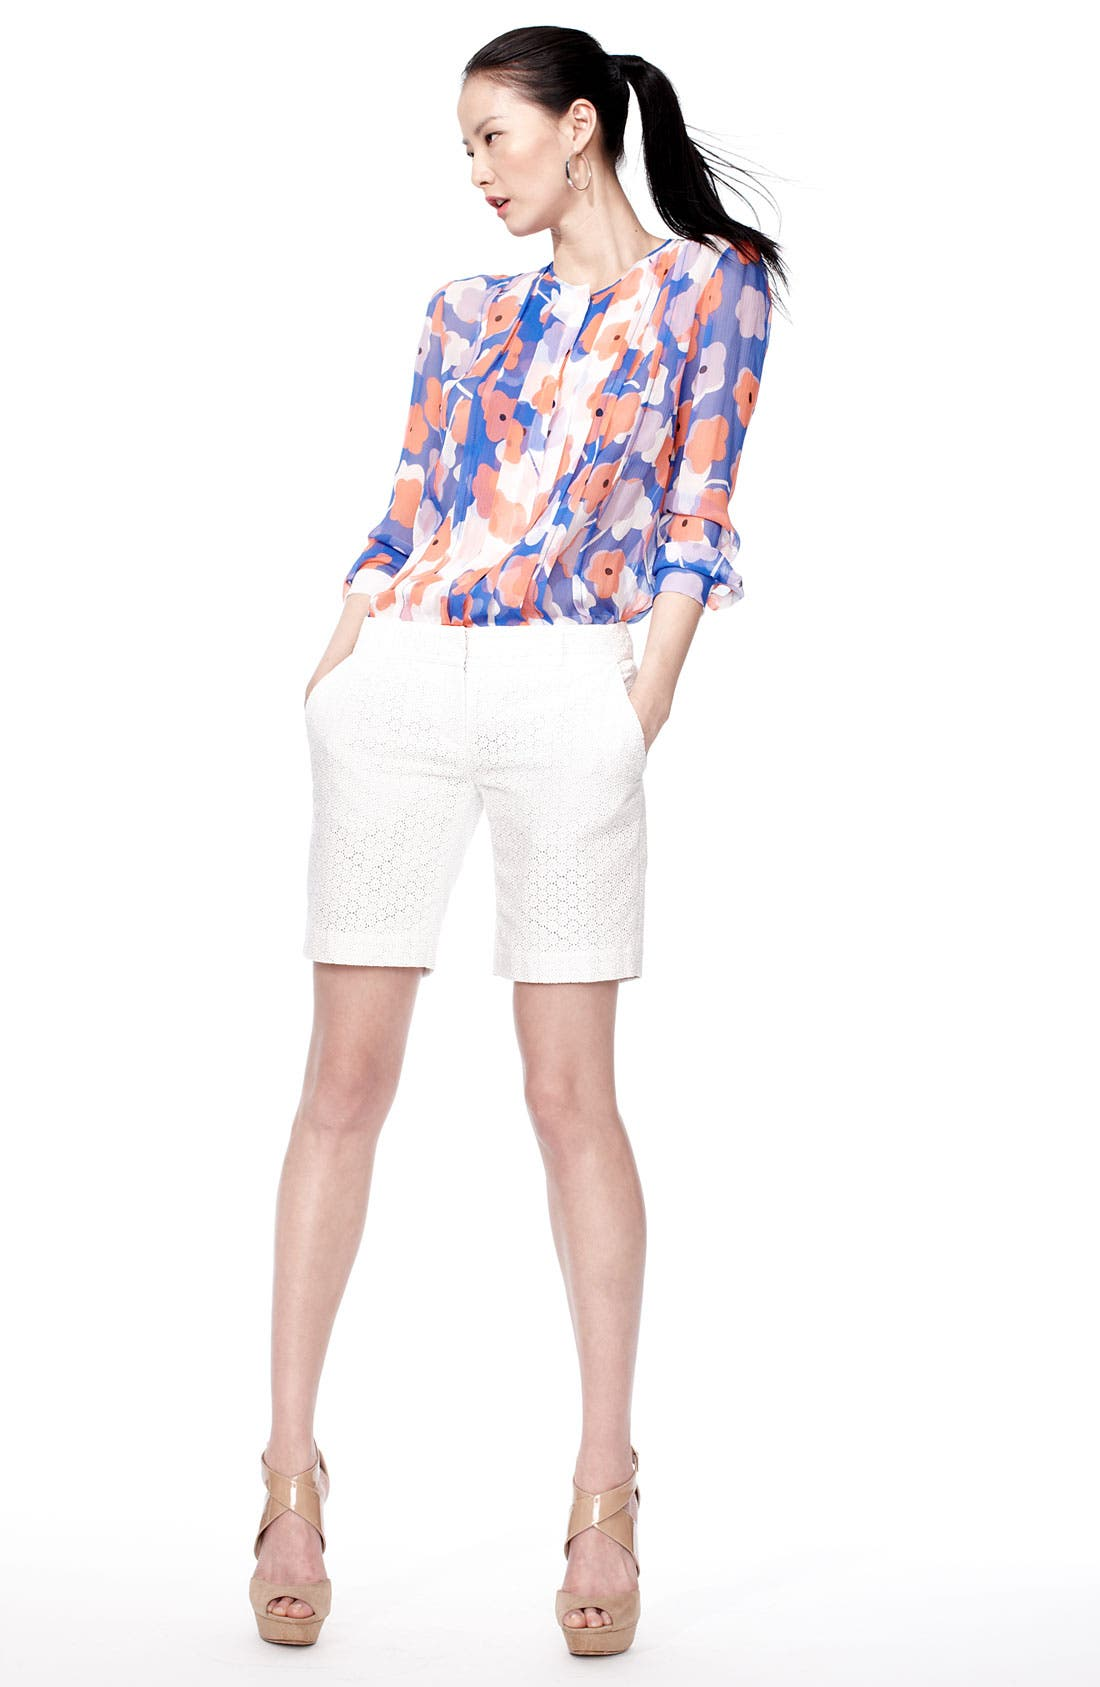 Alternate Image 1 Selected - Diane von Furstenberg Blouse & Shorts